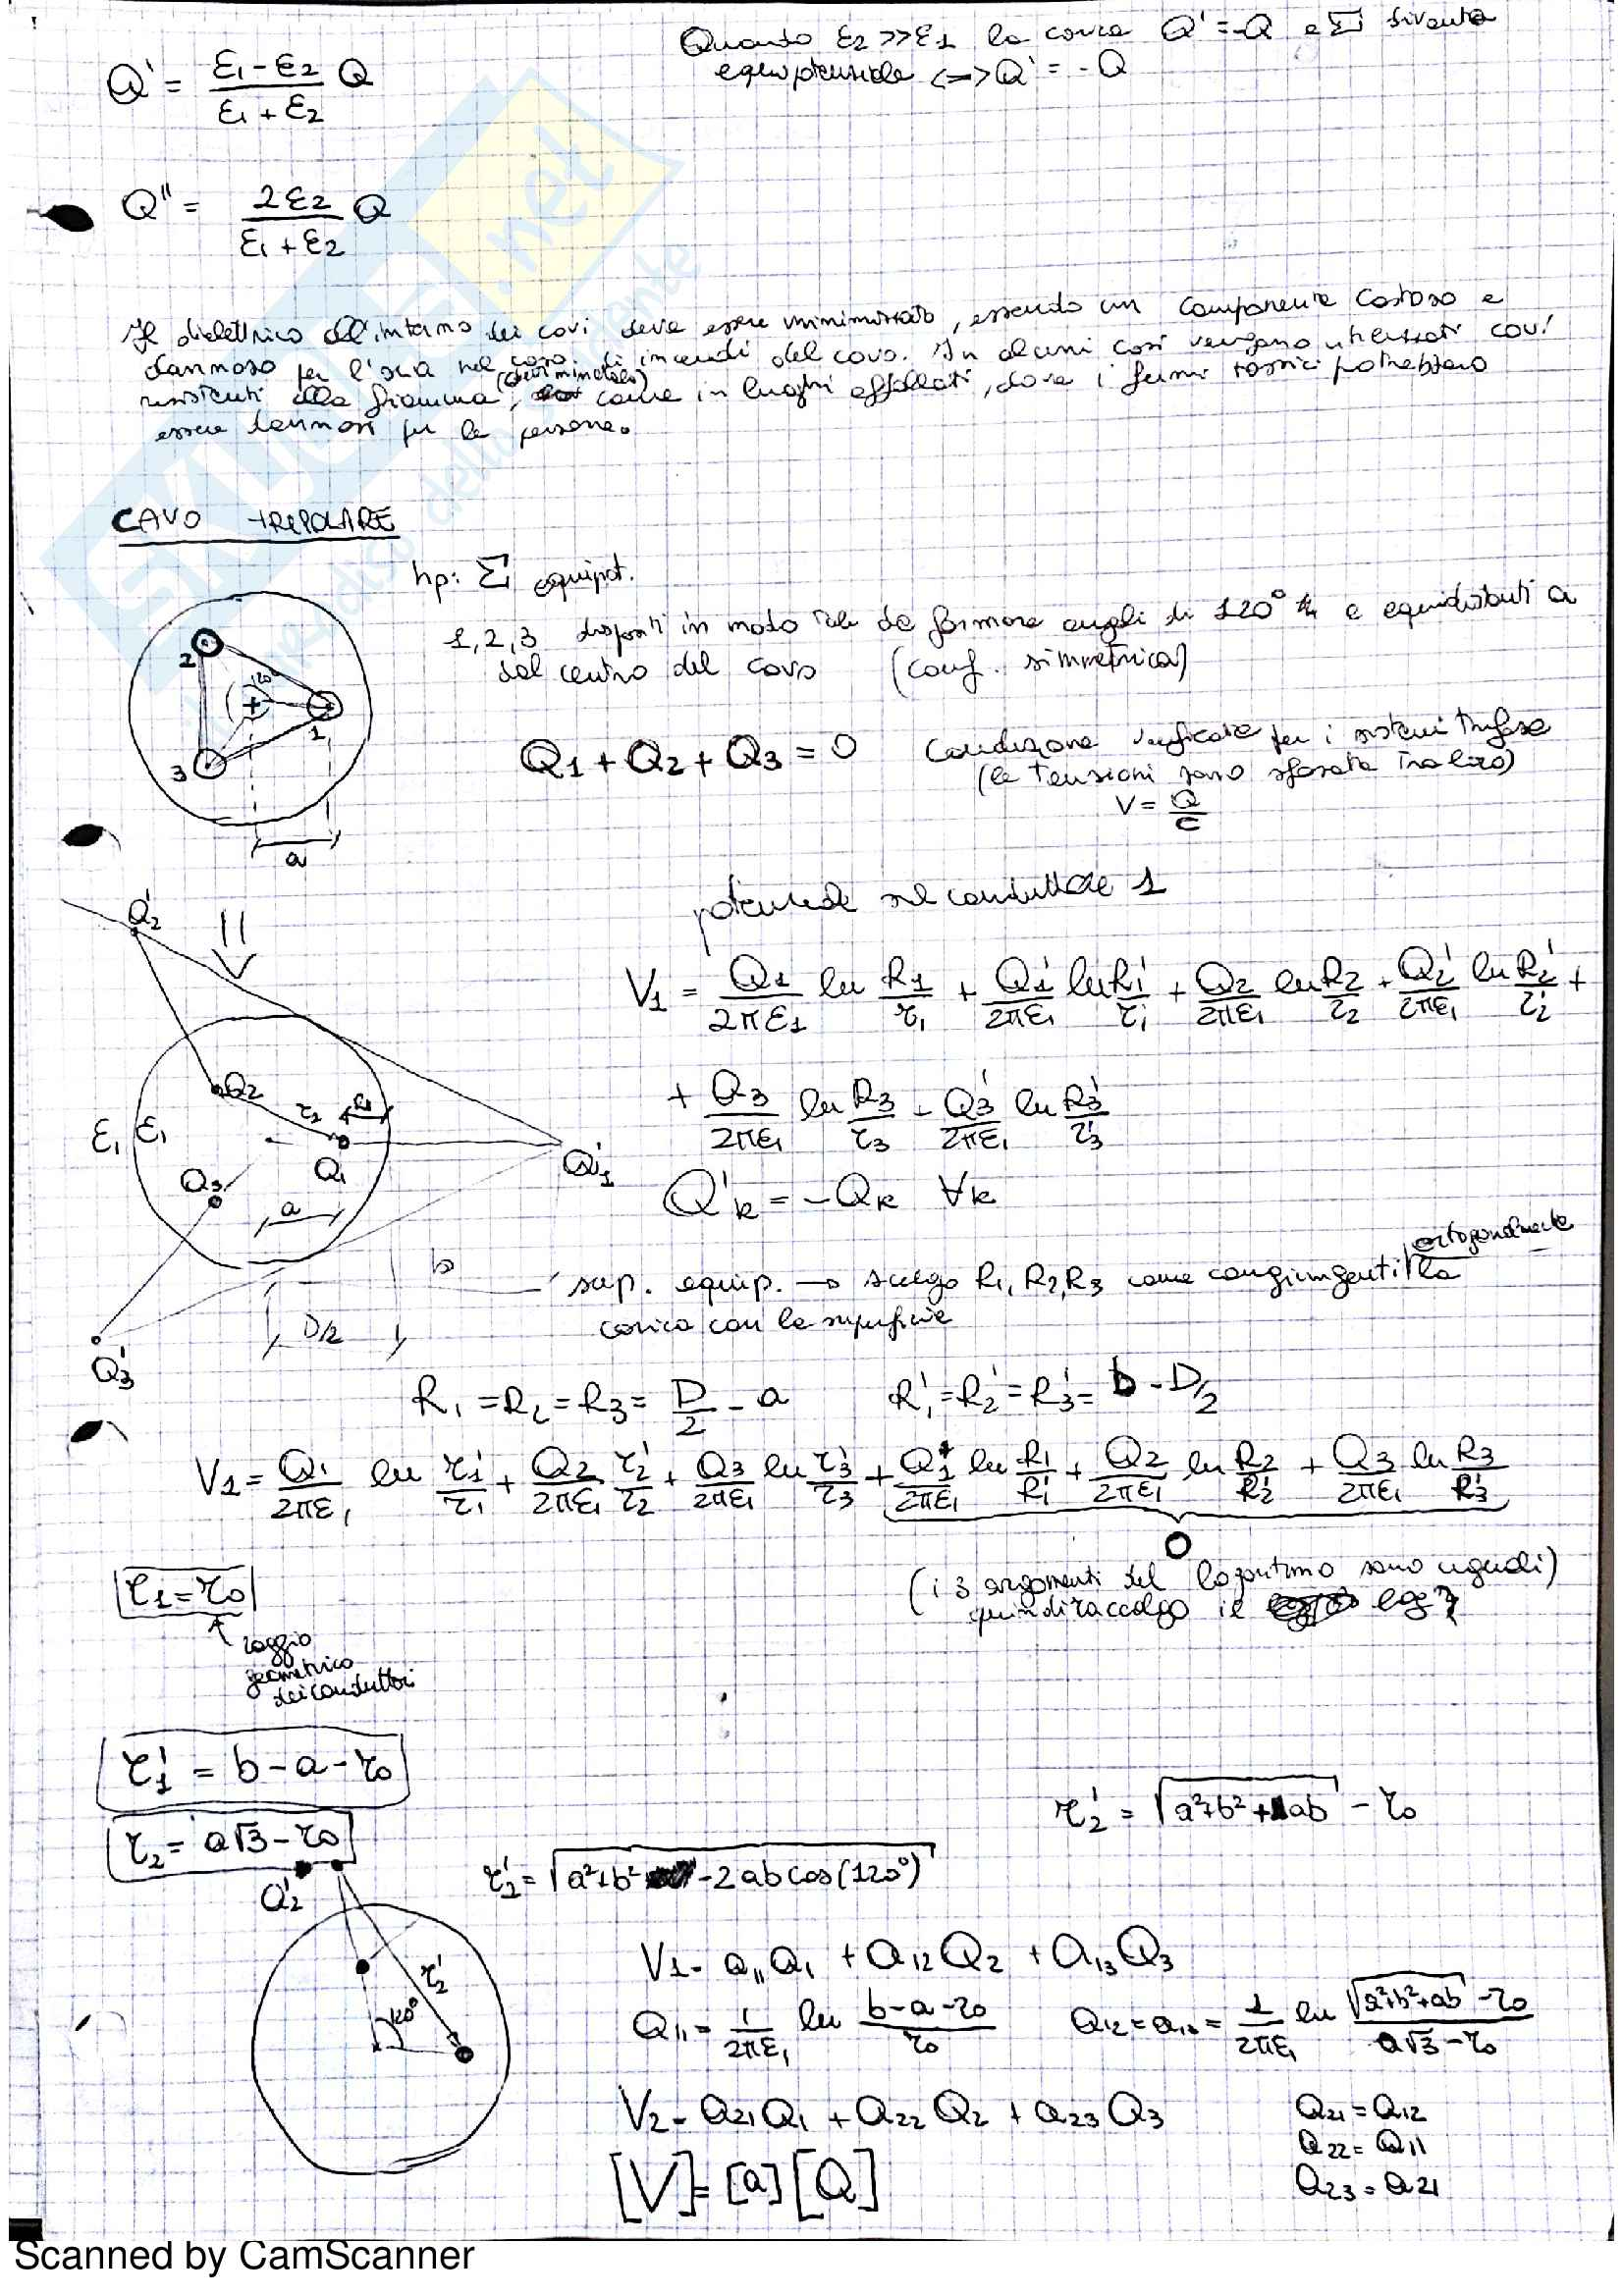 Appunti Elettrotecnica 1 Pag. 11